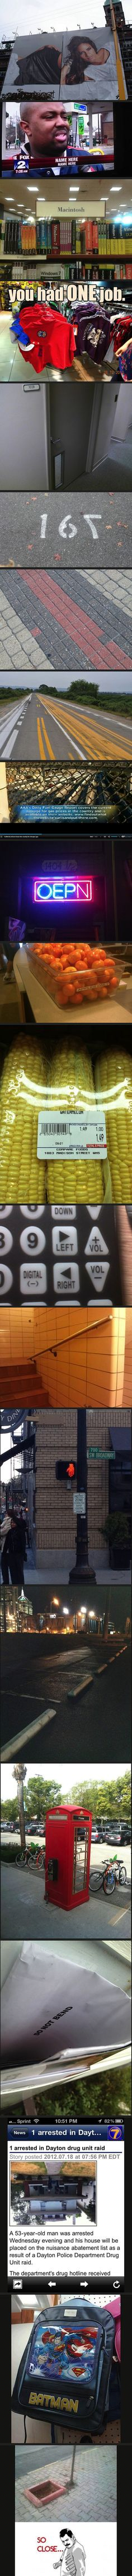 'You had one job' collection - DayLoL.com - Your Daily LoL and Entertainment!